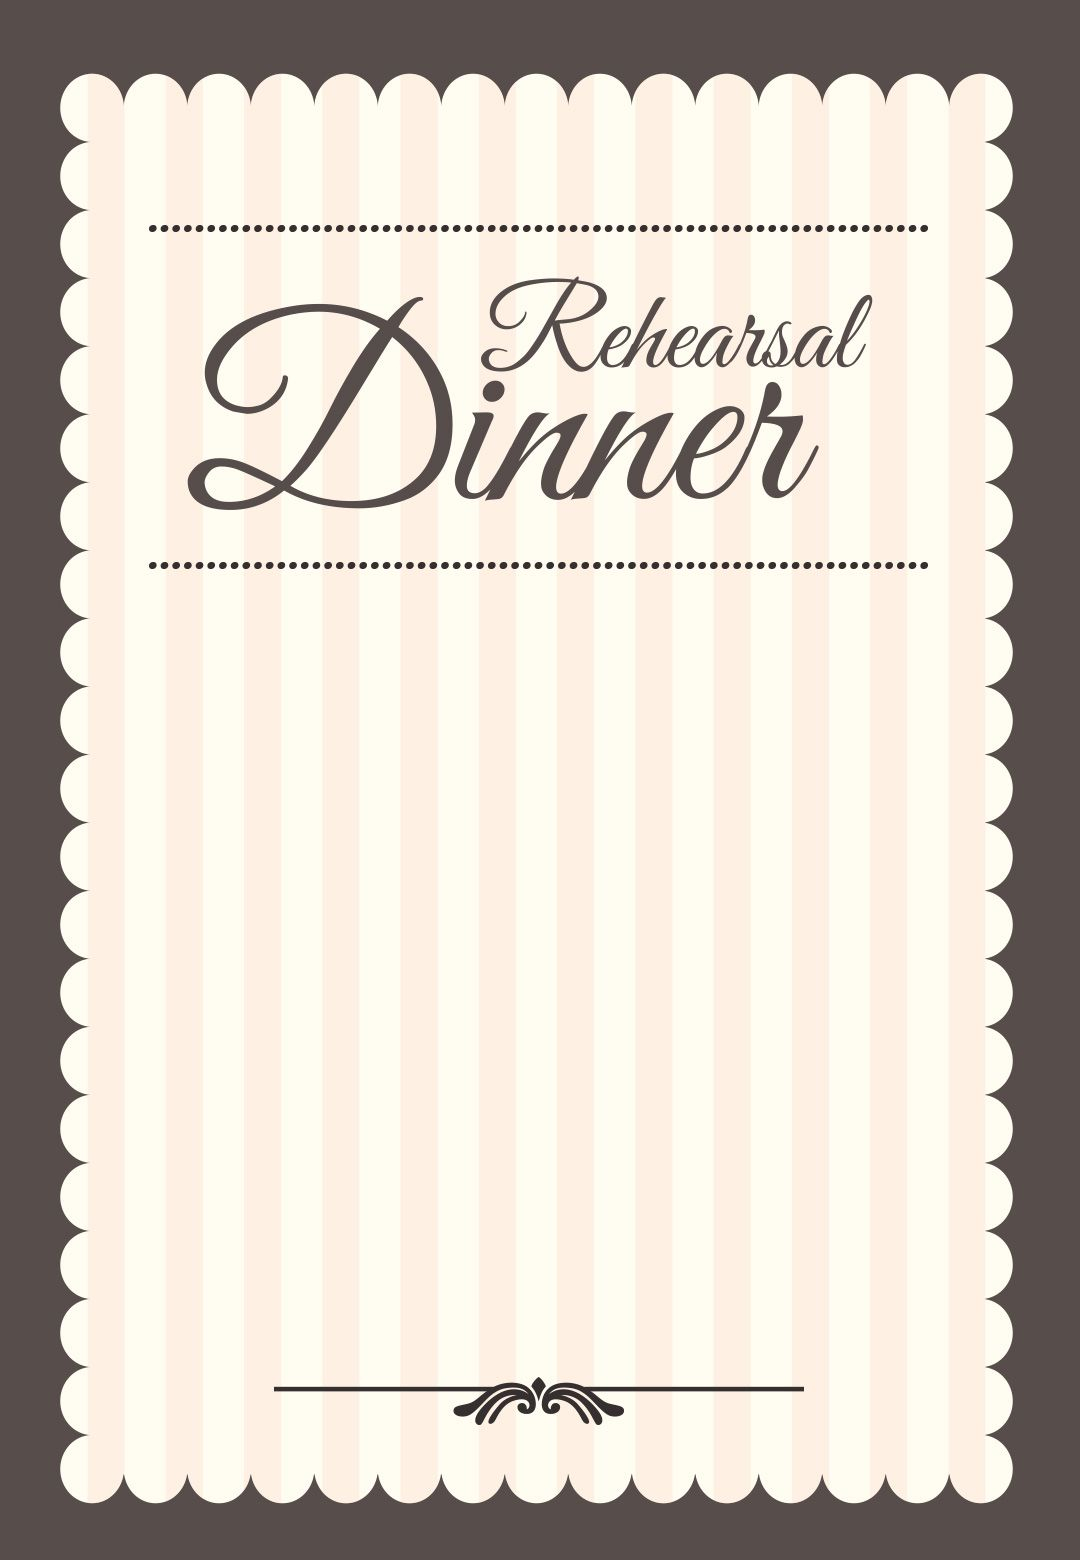 Stamped Rehearsal Dinner Free Printable Rehearsal Dinner Party pertaining to sizing 1080 X 1560